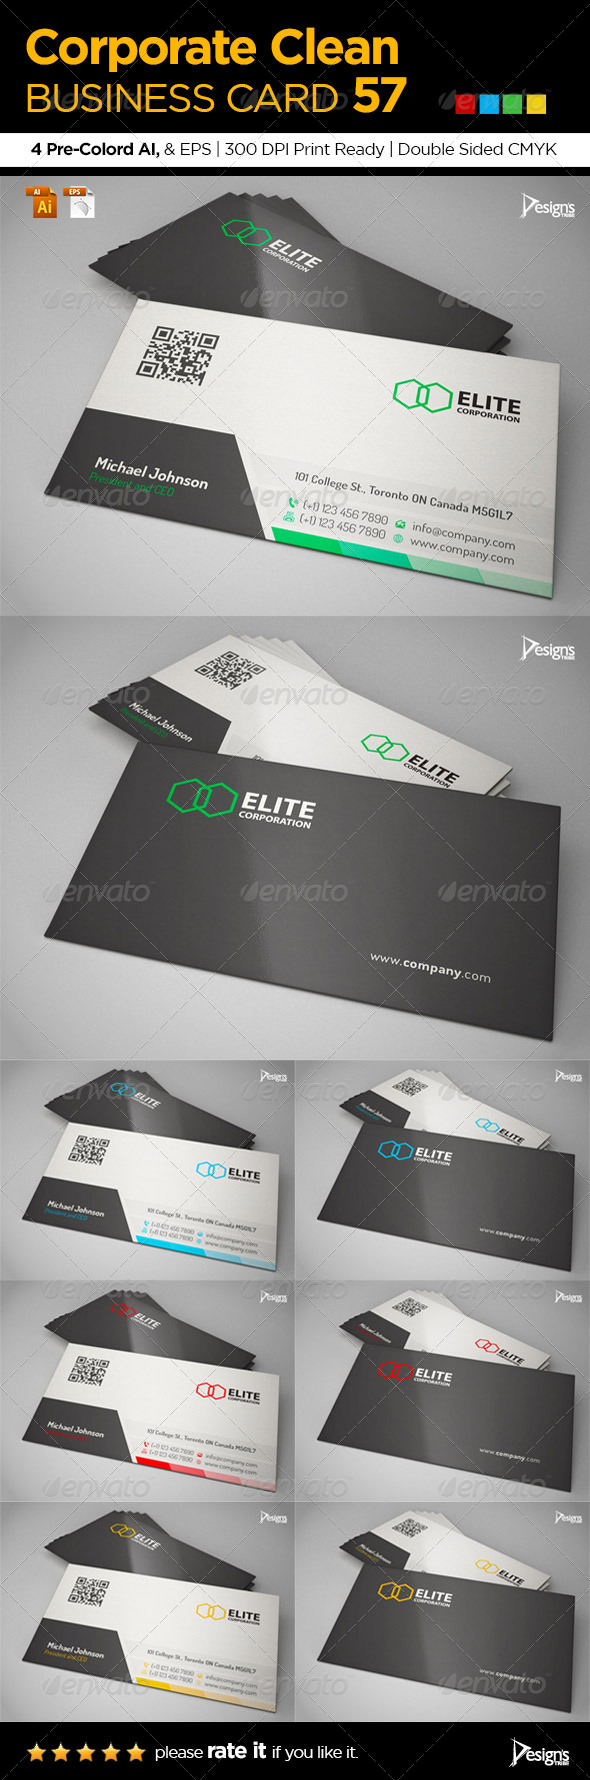 GraphicRiver Corporate Clean Business Card 57 6462963